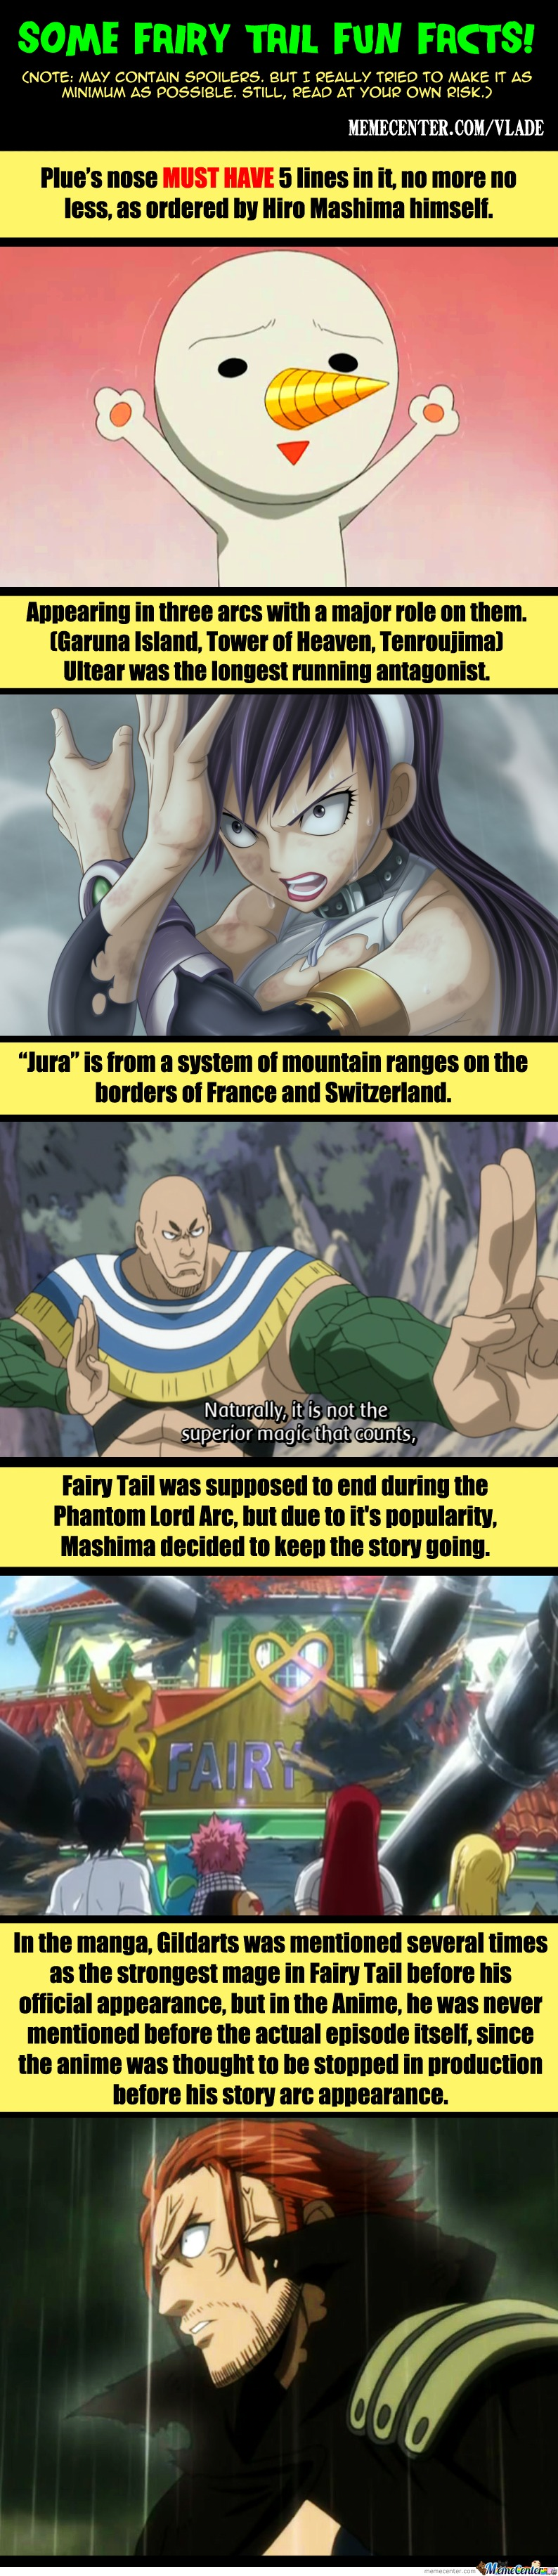 Fairy Tail Fun Facts!